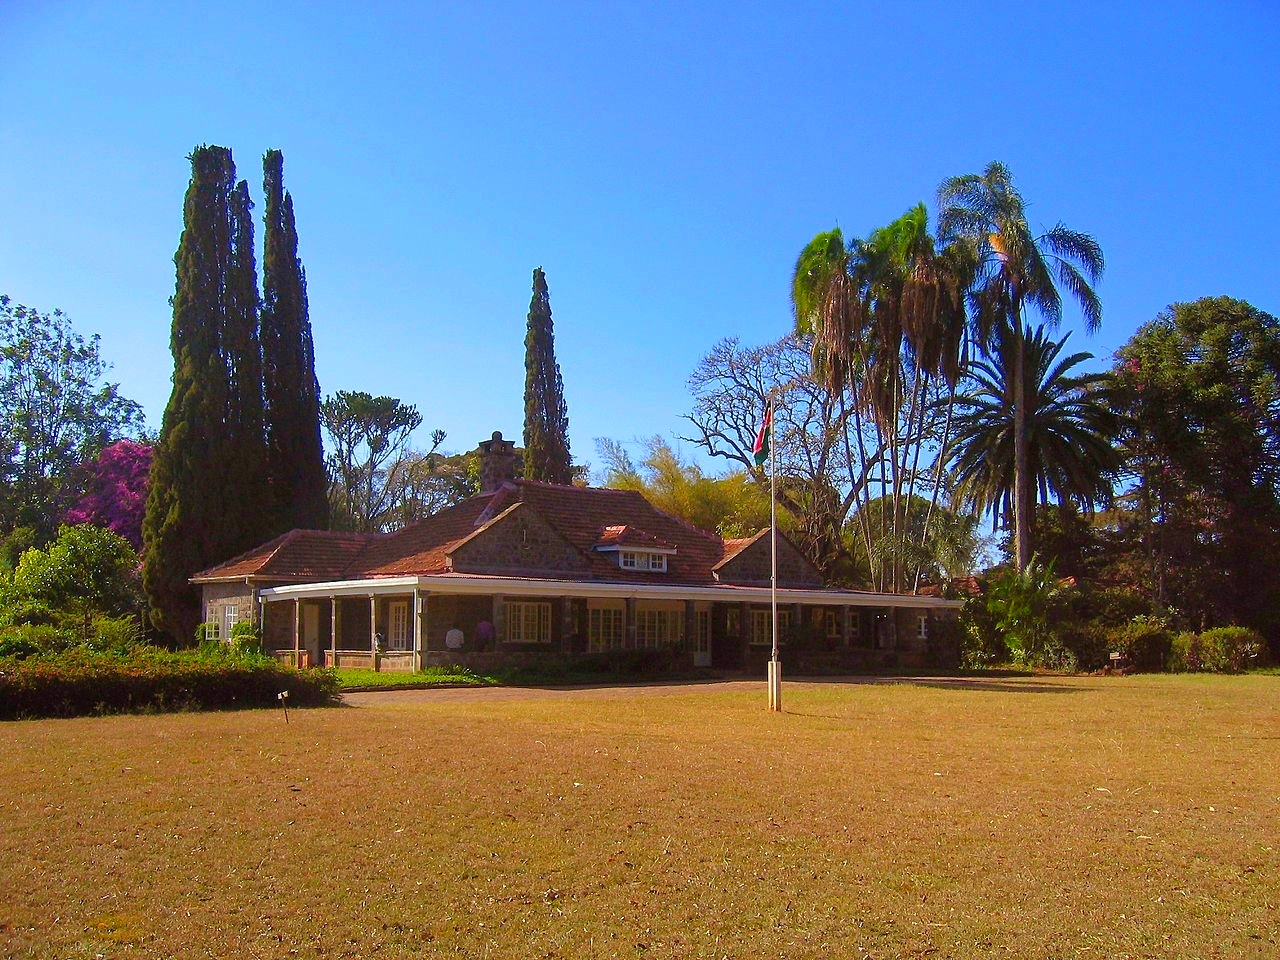 "Karen Blixen's farm near Nairobi, Kenya ""at the foot of the Ngong Hills"